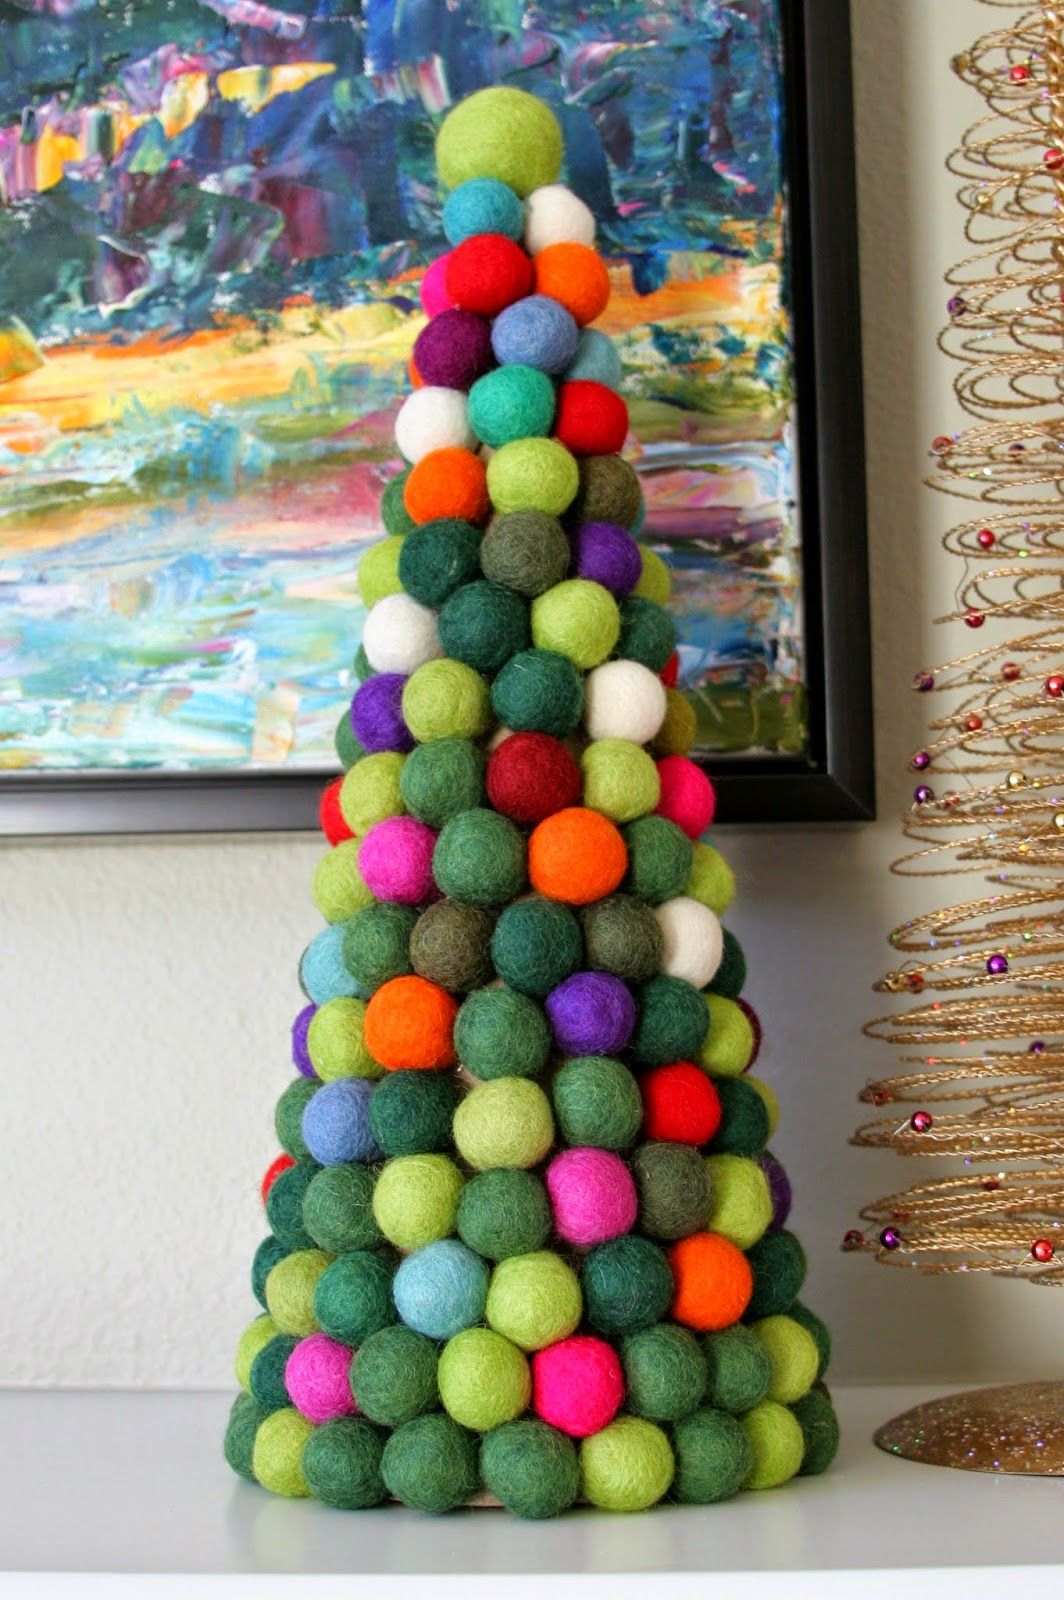 Decorating Ornament Balls The Most Creative Diy And Recycled Christmas Tree Ideas  Felt